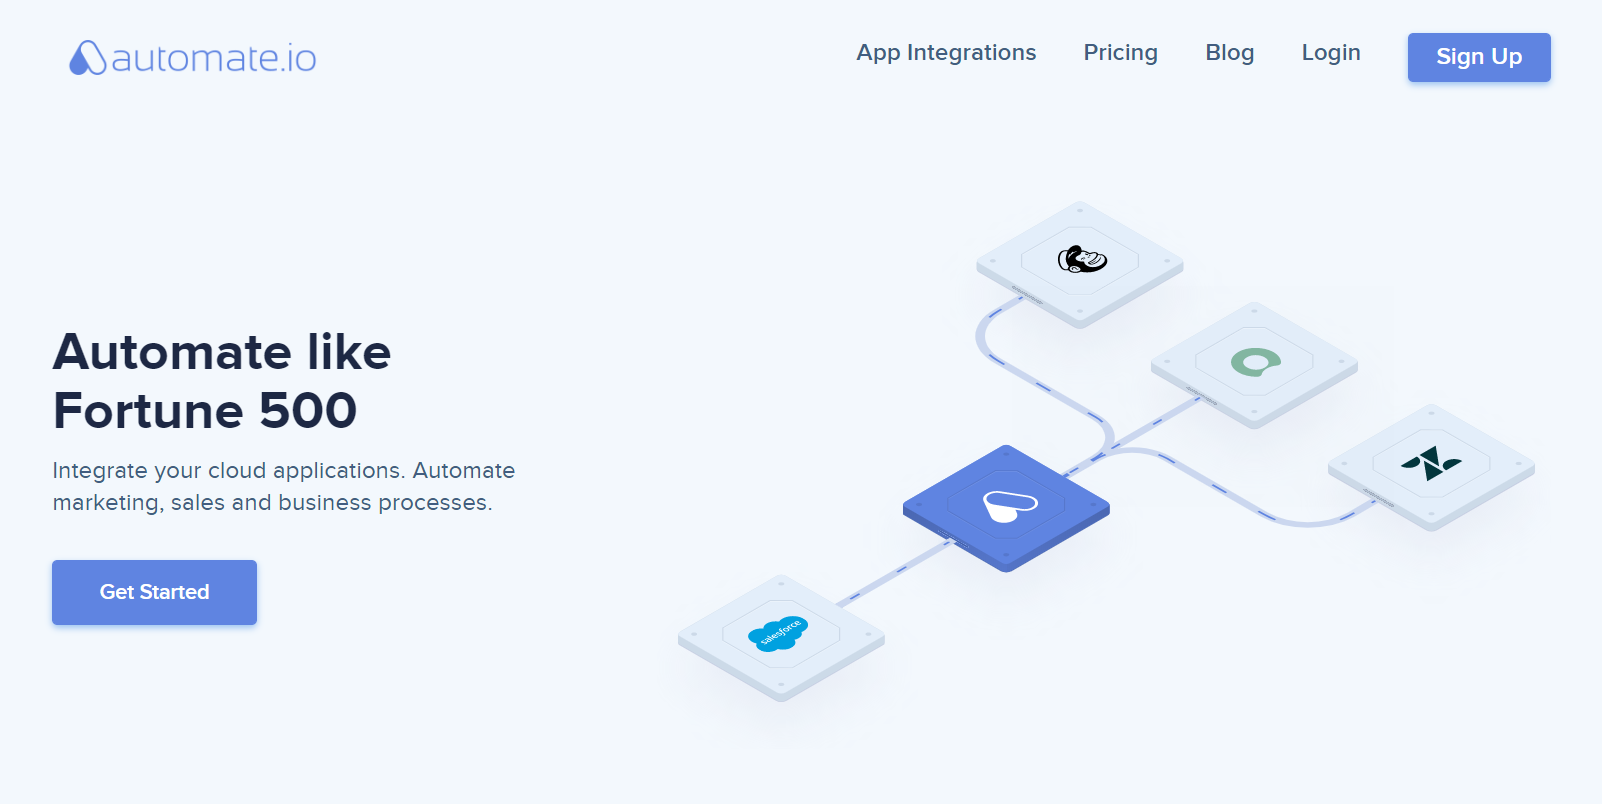 Automate.io - Automate Sales, Marketing & Business Processes